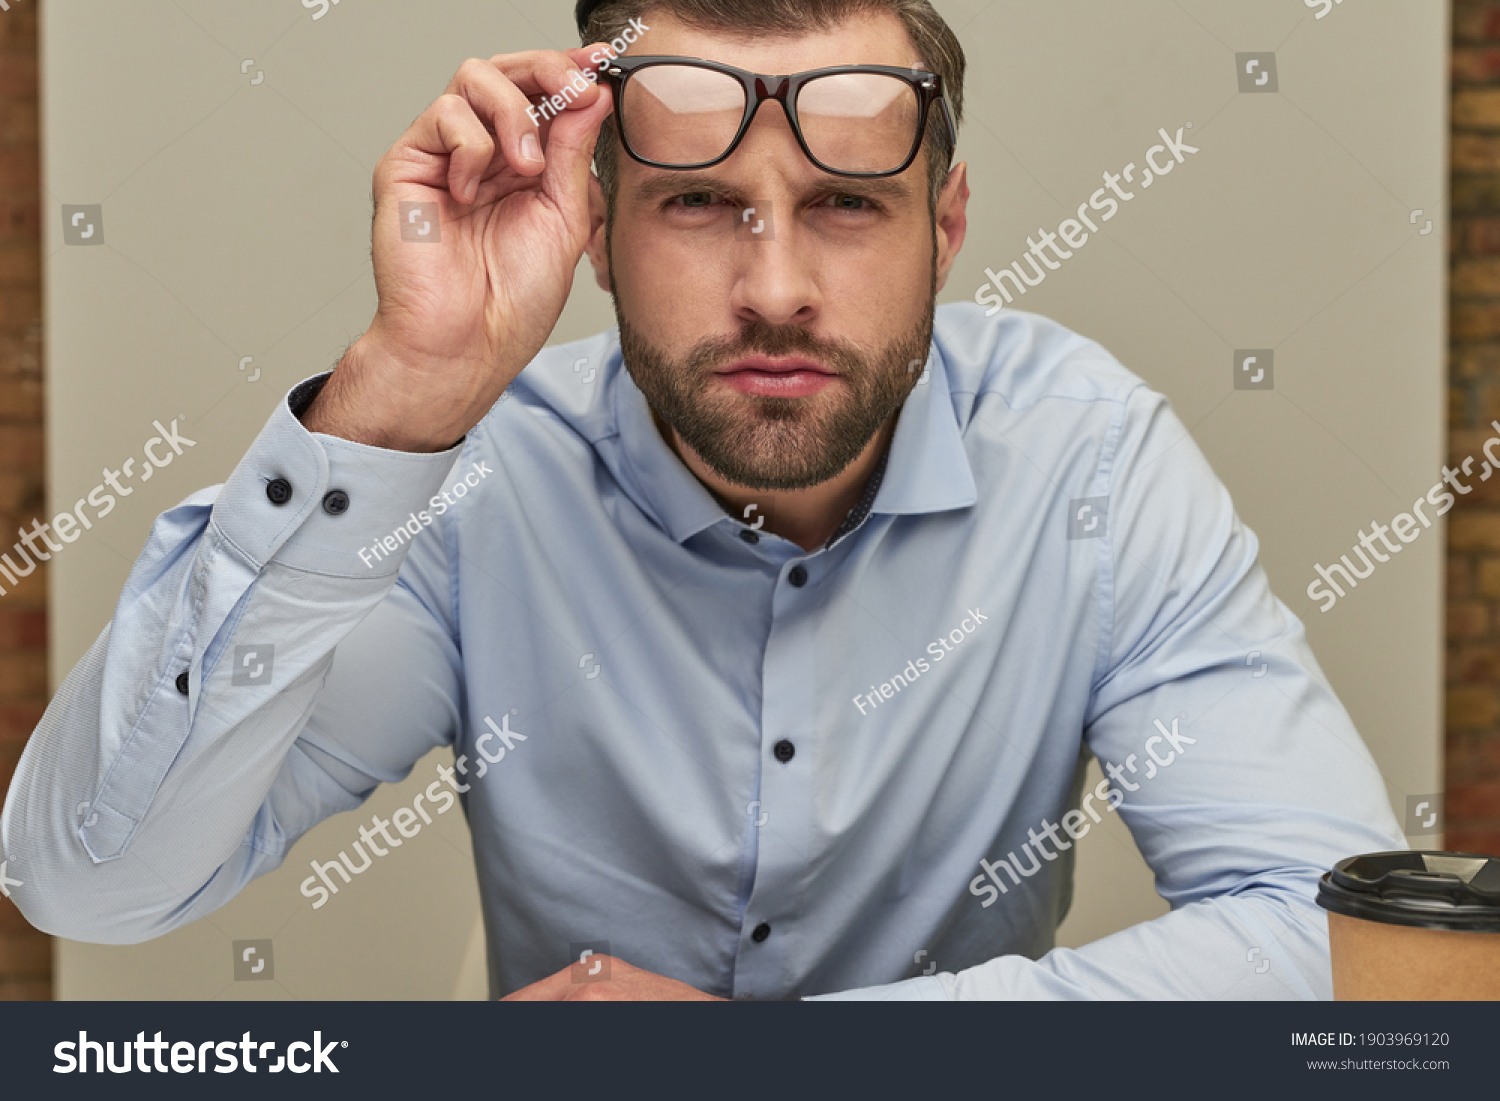 Steadfast glance of the serious office worker #1903969120